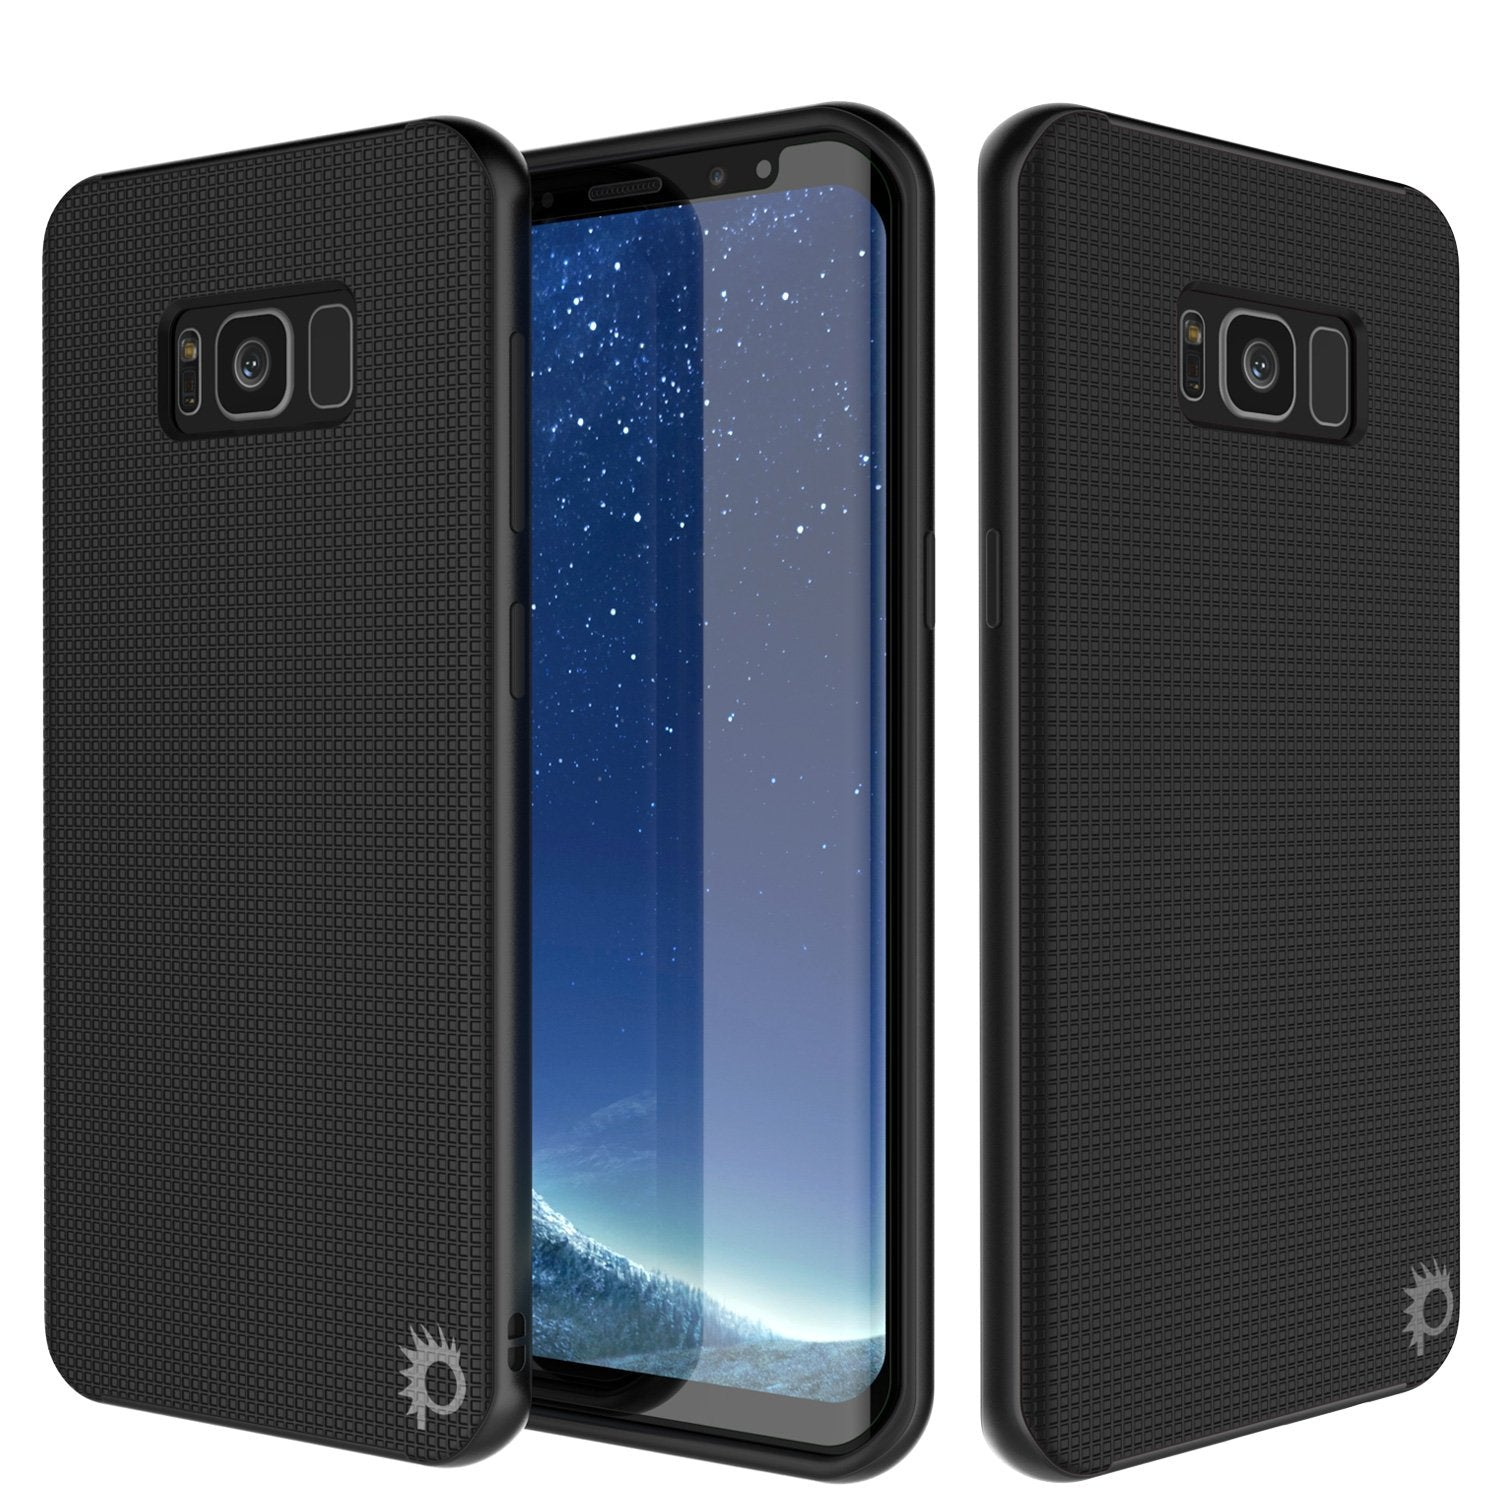 Galaxy S8 PLUS Case, PunkCase [Stealth Series] Hybrid 3-Piece Shockproof Dual Layer Cover [Non-Slip] [Soft TPU + PC Bumper] with PUNKSHIELD Screen Protector for Samsung S8+ [Black] - PunkCase NZ